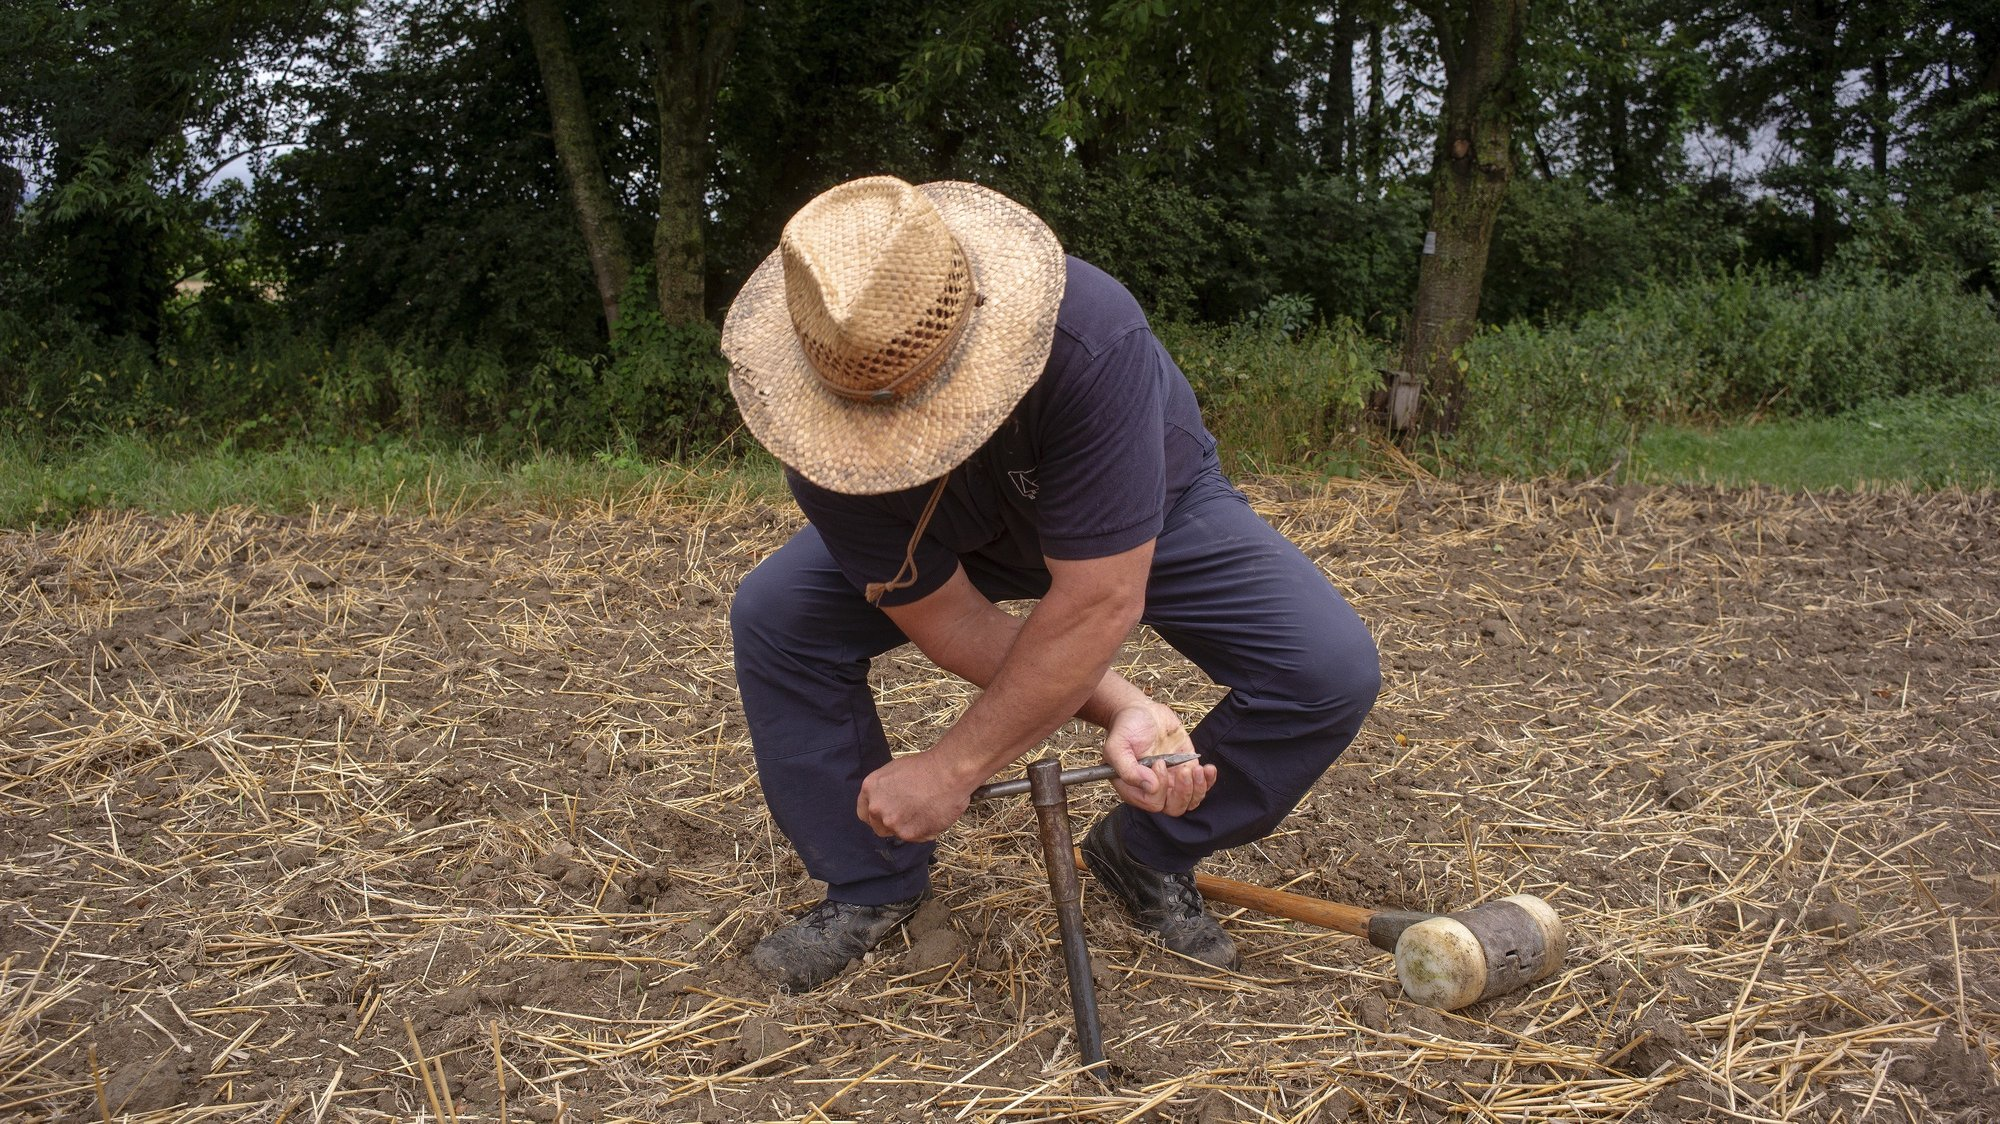 epa07747686 Austrian pedologist Guenter Aust, screws in a drill to take a ground sample on a field near Petztenkirchen, 100 kilometers west of the capital Vienna, Austria, 29 July 2019. Aust, who is in charge of mapping and field recording at the Austrian Federal Research and Training Centre for Forests, Natural Hazards and Landscape, takes soil samples from land where no data has been collected to analyze and digitize the soil structure and layouts as part of his efforts to curate an Austrian soil map. The map would be used to help farming and policy decisions about land usage and related rights. Aust told epa that a fertile soil layer can take decades to regenerate after heavy rains or otherwise damaged land. As well as working on soil mapping, Aust campaigns to raise awareness about land usage and consideration of local soil, lamenting that humus-rich soil and highly valuable agricultural land that need to be protected and maintained are much cheaper than most construction grounds. Aust is part of a global effort to better protect and use the earth's resources. The Global Footprint Network, a United States-based international non-profit research group, calculates the Earth's Overshoot Day, an illustrative date on which humanity's consumption of natural resources exceeds the planet's ability to replenish them. The date for 2019, 29 July, came two months earlier than 20 years ago, further illustrating the rapid rate of soil erosion. Maria Helena Semedo, Deputy Director-General for Climate and Natural Resources at the Food and Agriculture Organization (FAO) of the United Nations (UN) said on 15 May 2019: 'Today the equivalent of one soccer pitch of soil is eroded every five seconds, and the planet is on a path that could lead to the degradation of more than 90 percent of all the Earth's soils by 2050.'  EPA/CHRISTIAN BRUNA